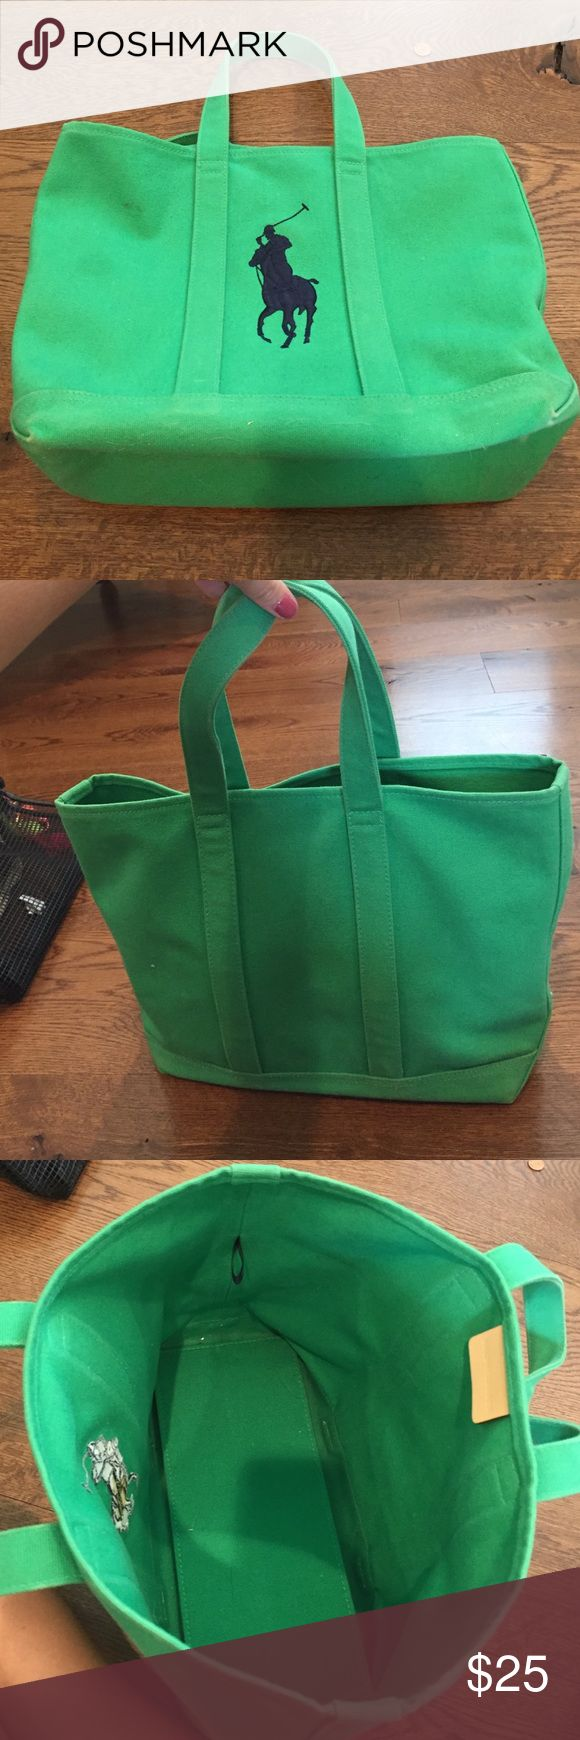 Ralph Lauren tote bag Green Ralph Lauren tote bag. Small spot on the front but hardly noticeable. Otherwise great condition! Ralph Lauren Bags Totes